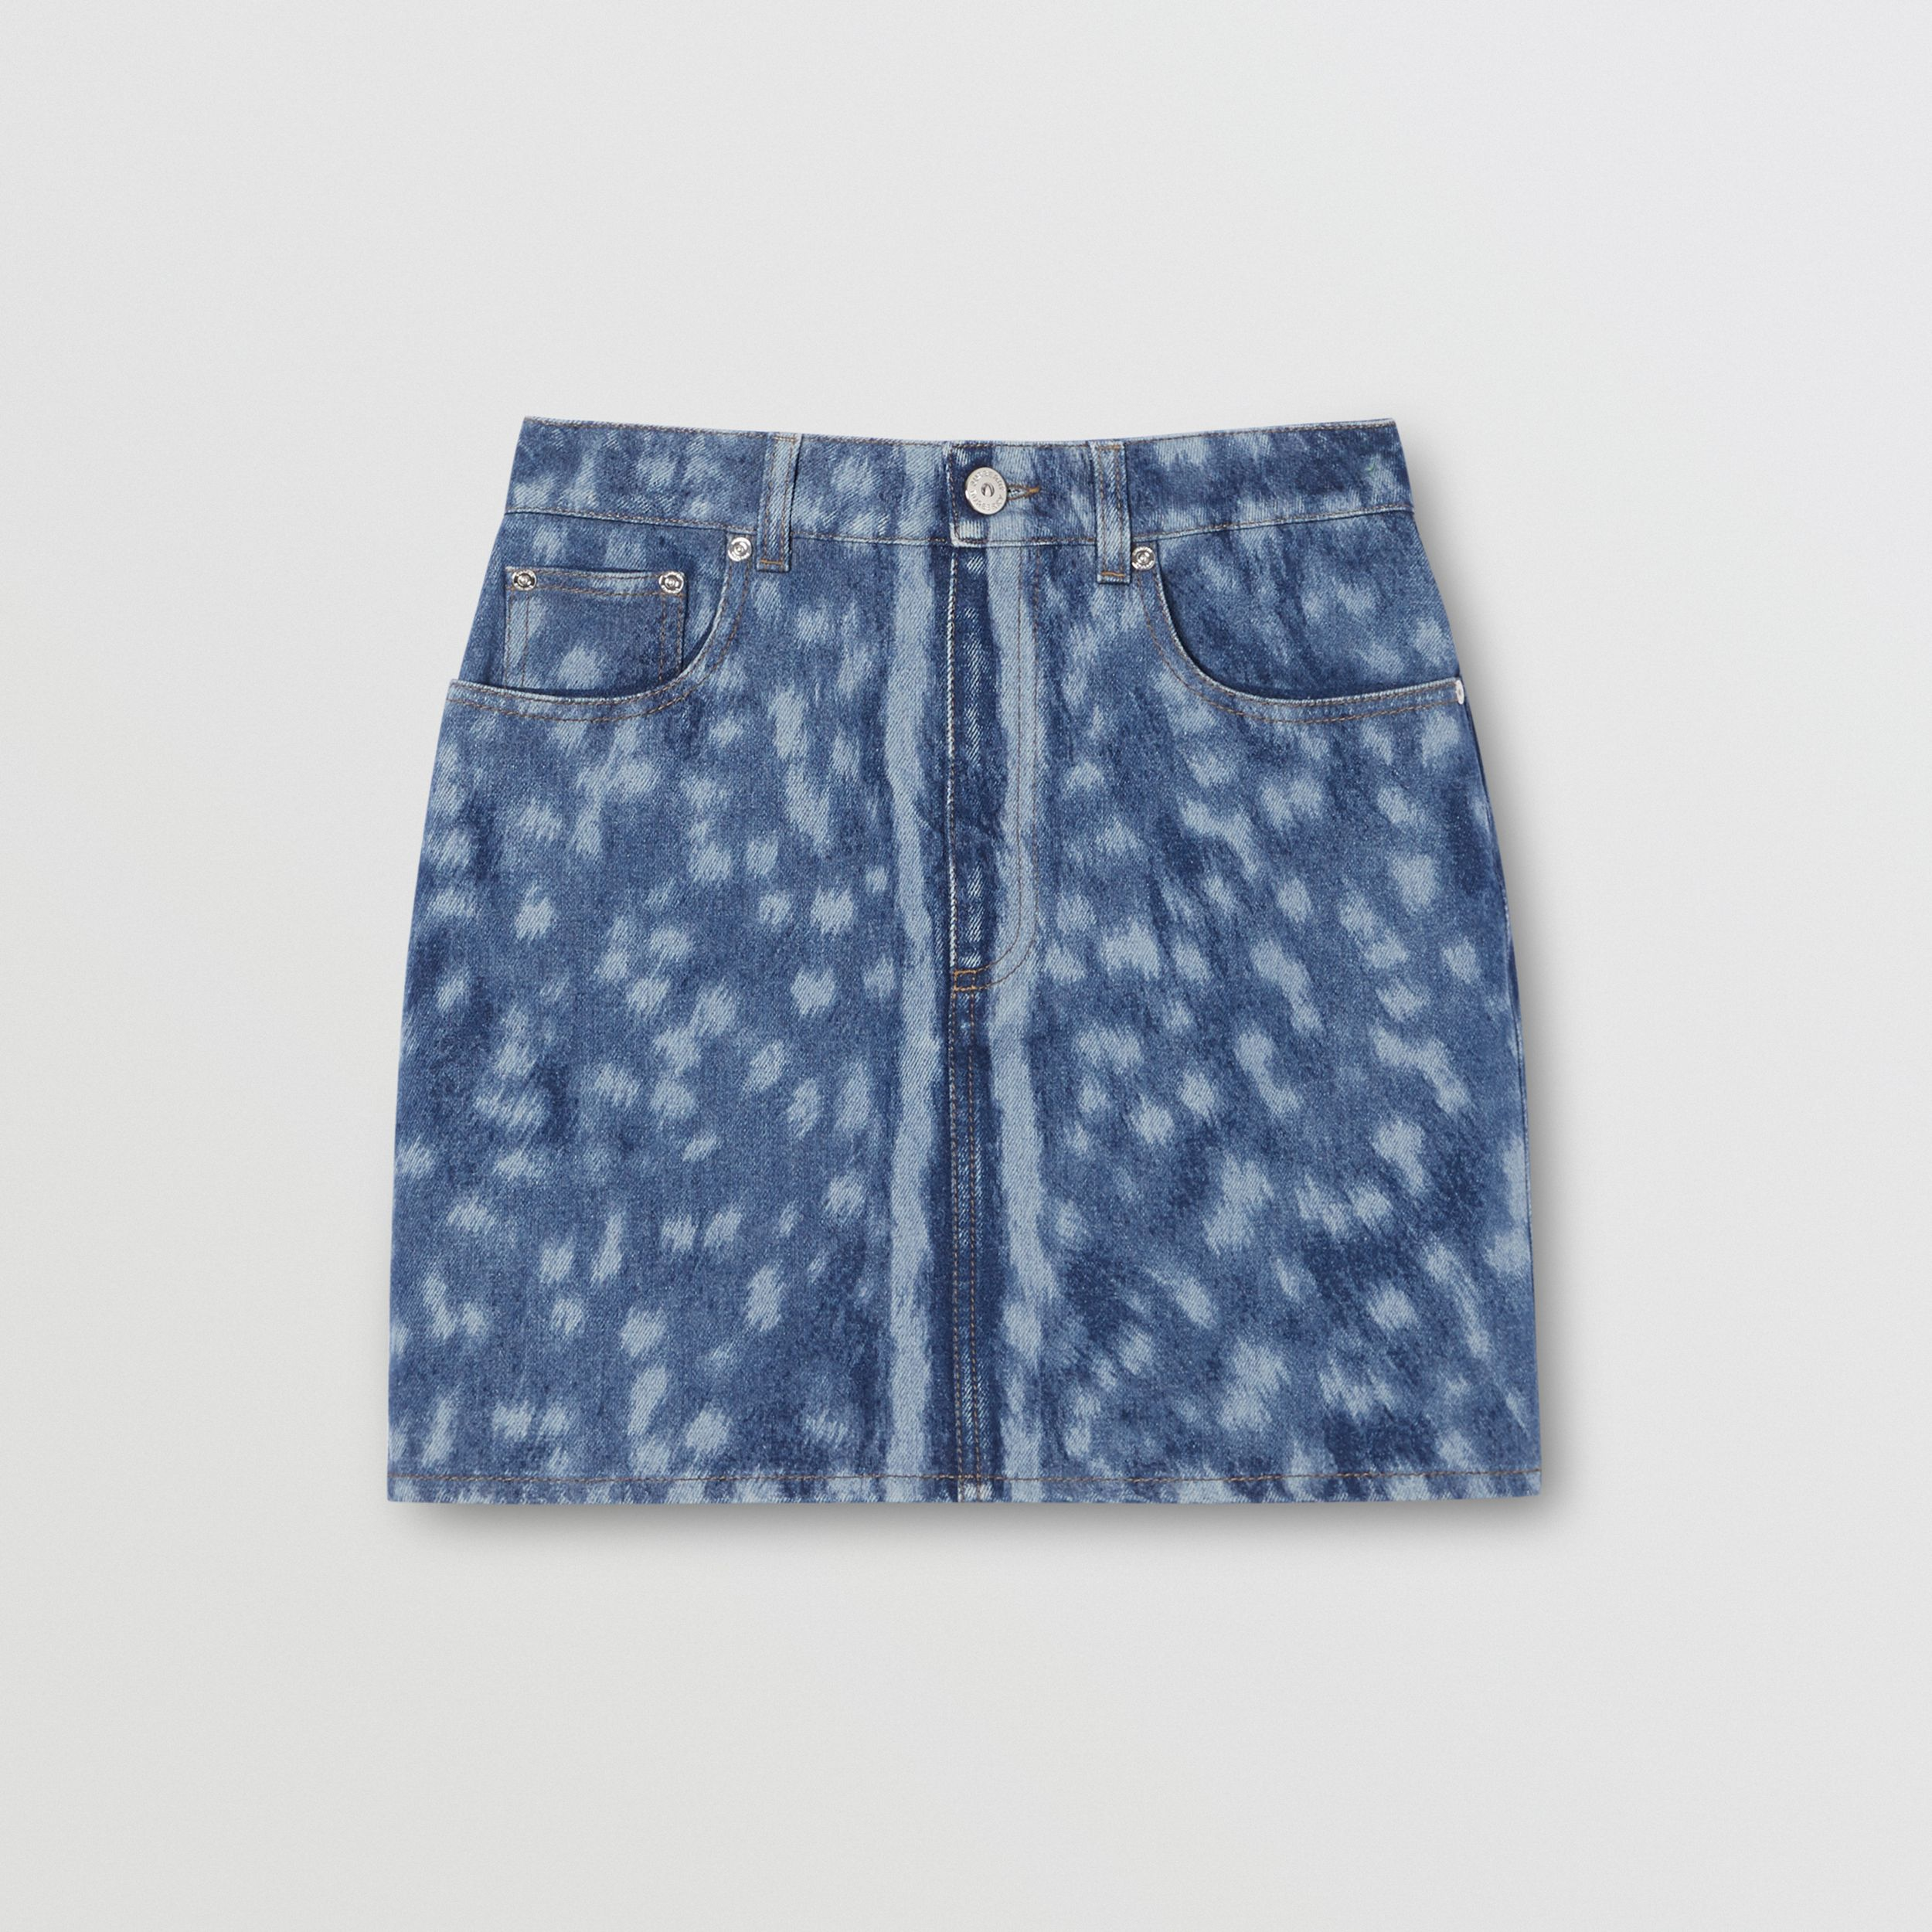 Deer Print Denim Mini Skirt in Mid Indigo - Women | Burberry - 4